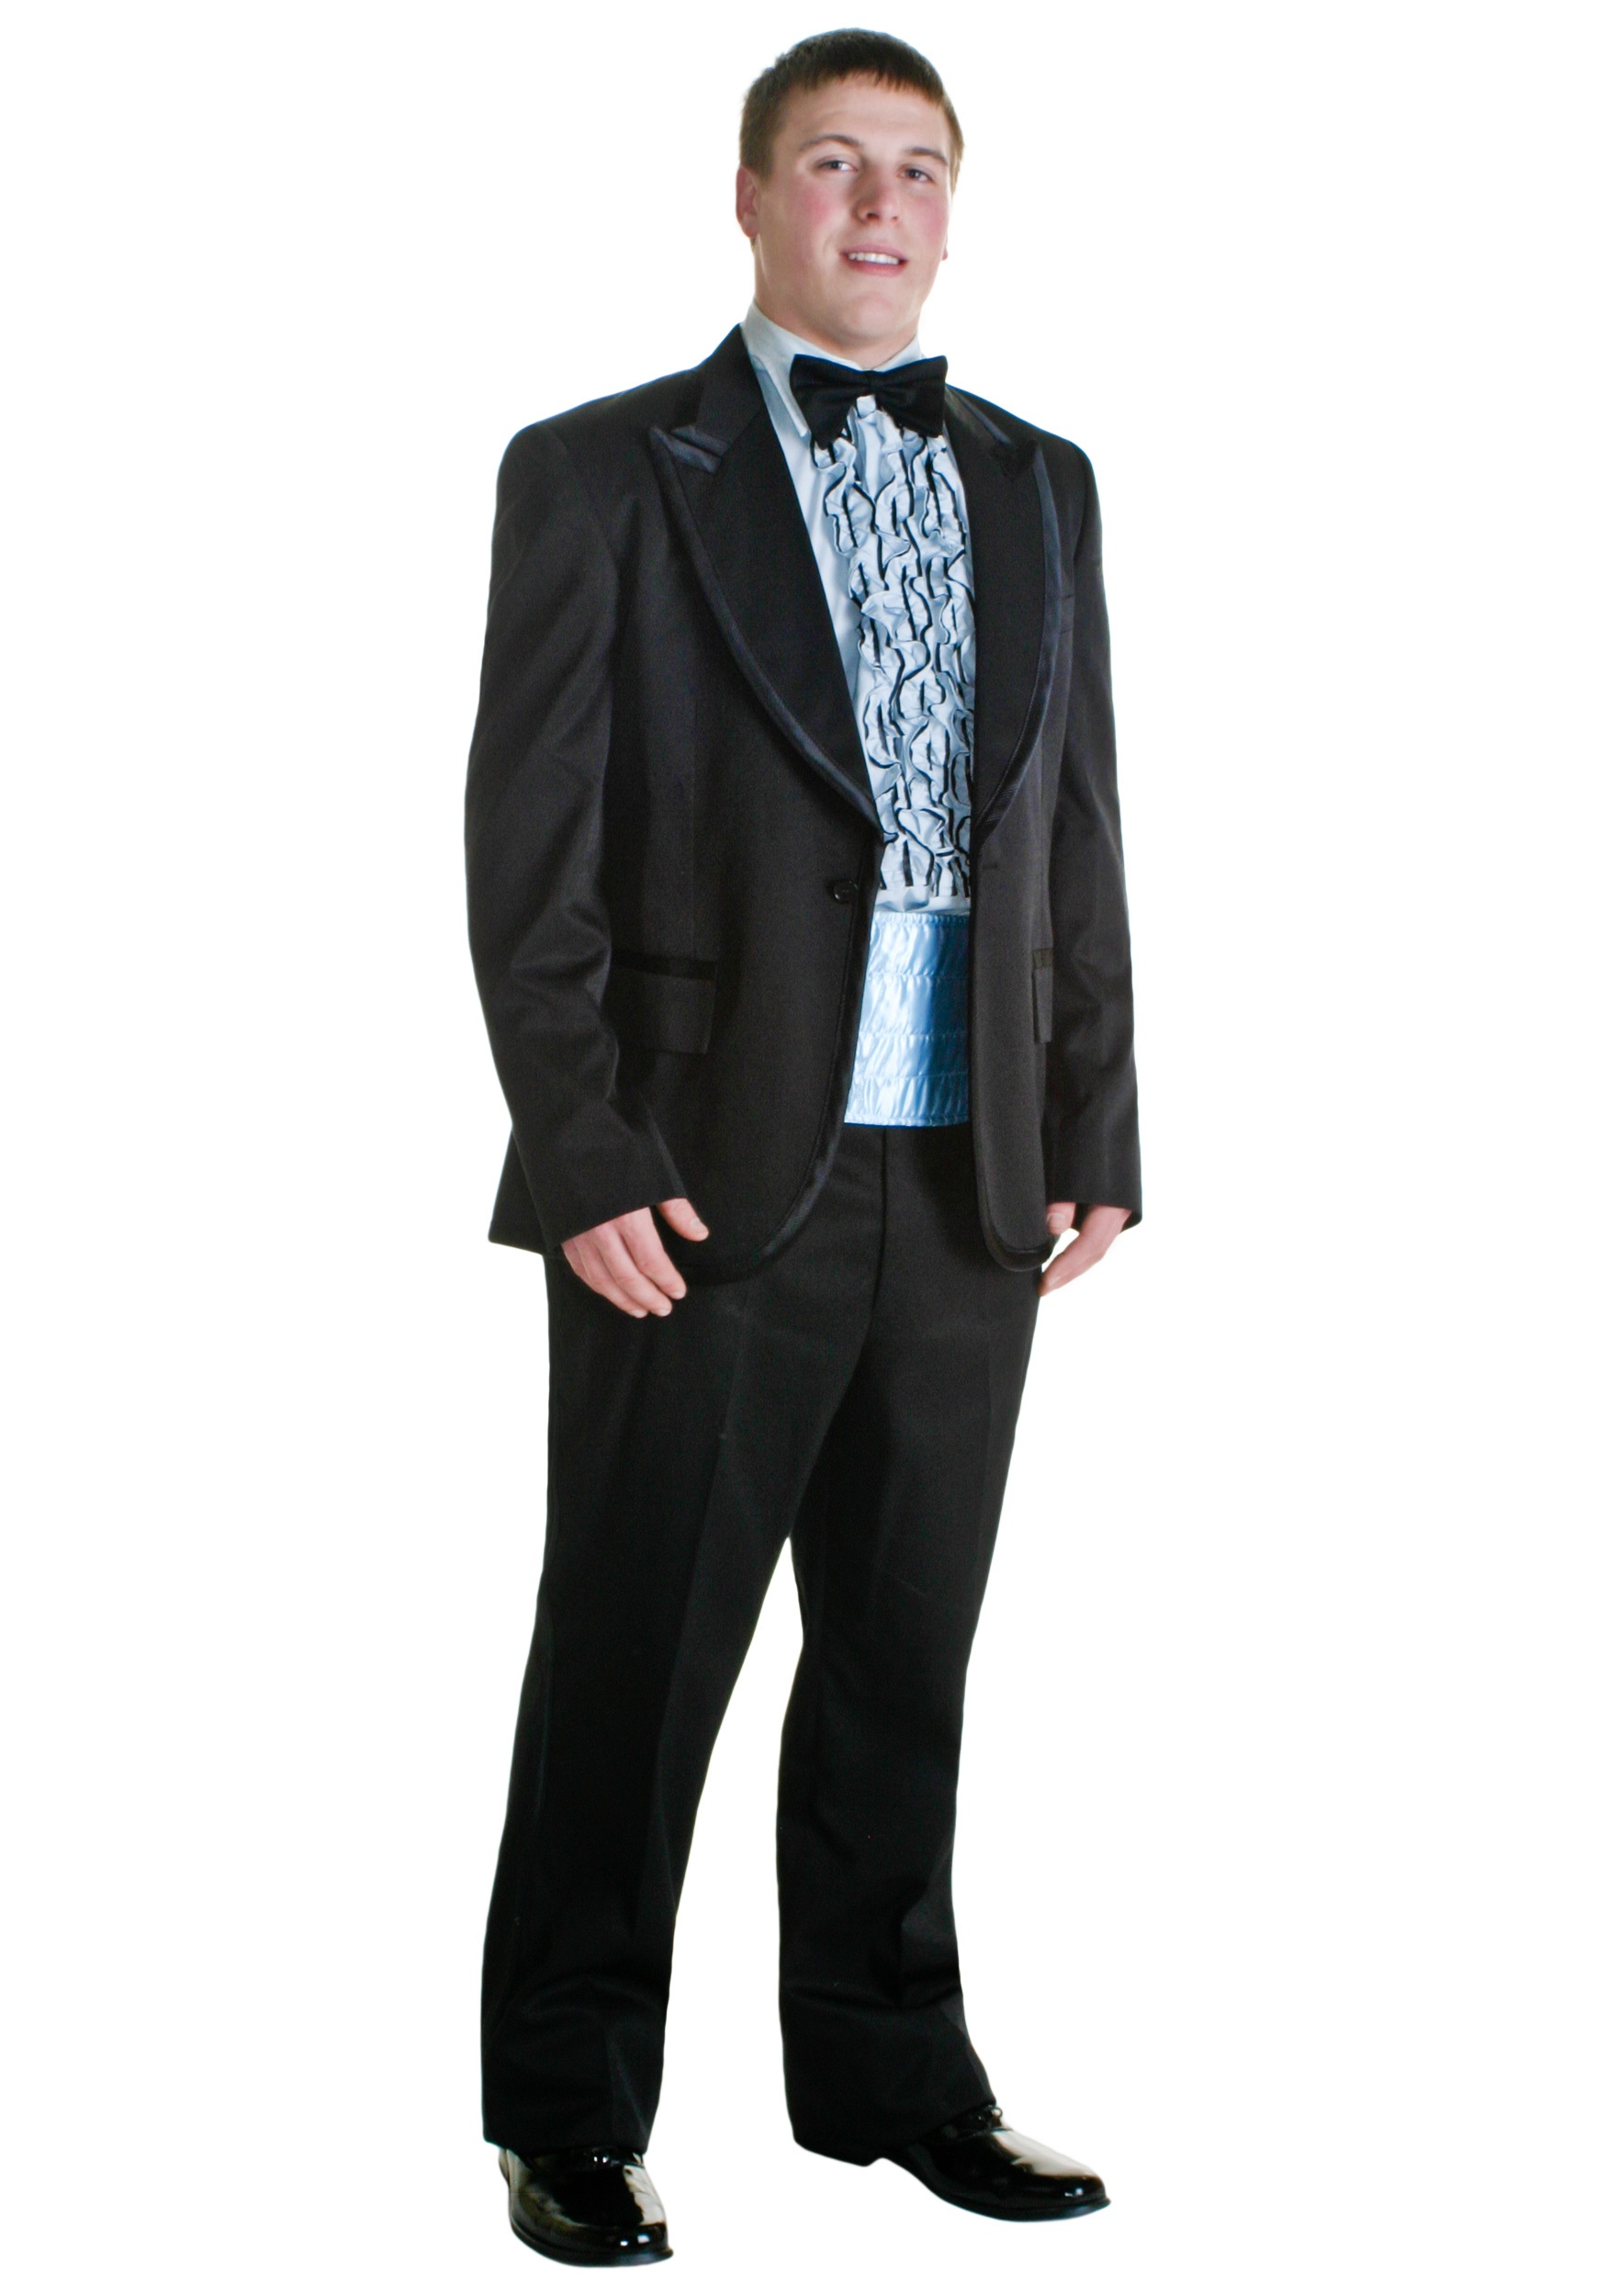 80s Fashion For Men Rentals Black s Tux CostumeRent